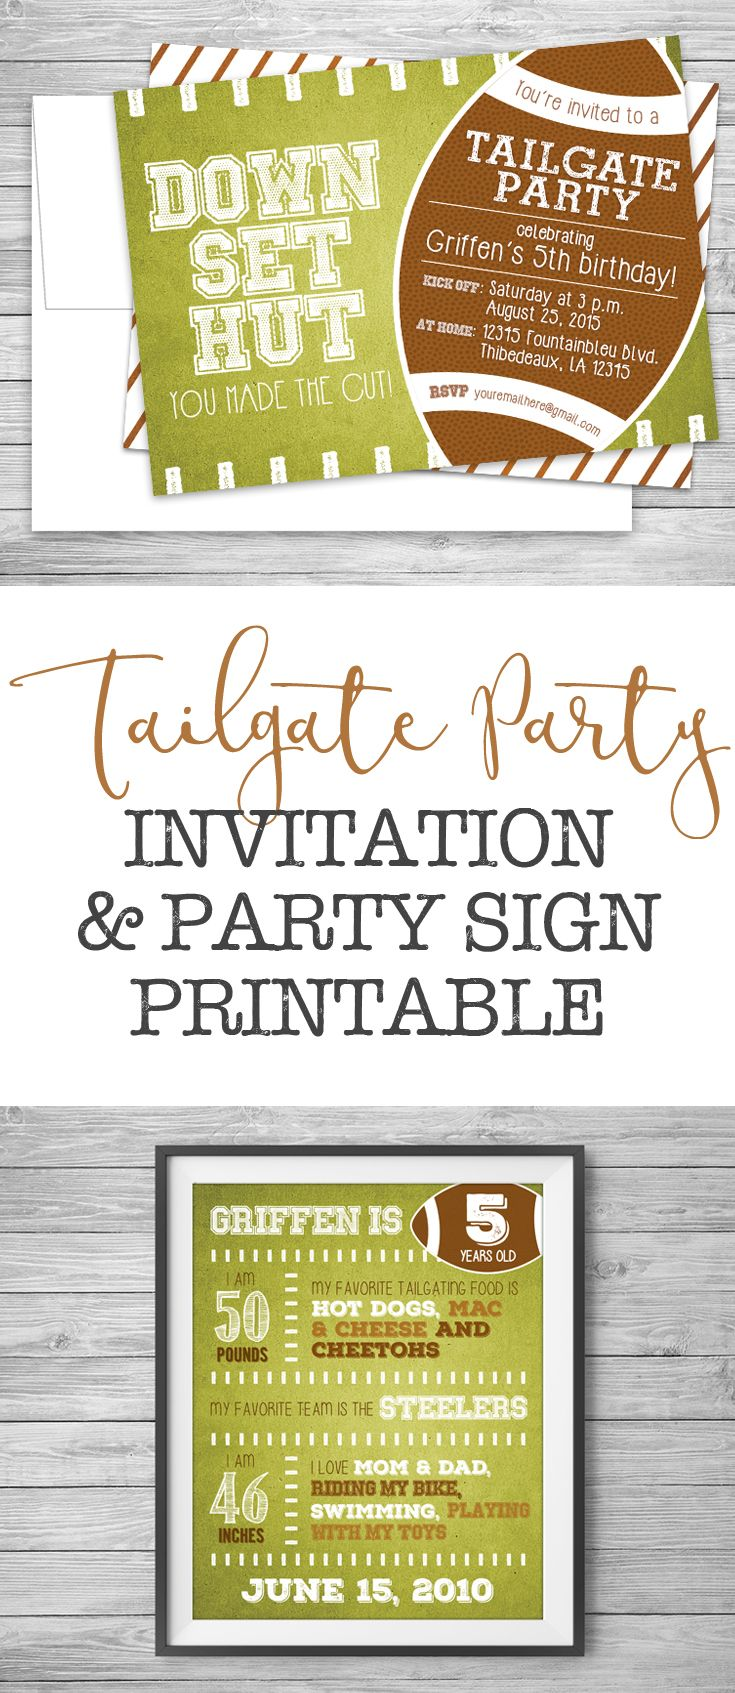 Custom Tailgate Party Invitation and Party Sign Printable at #NviteCP